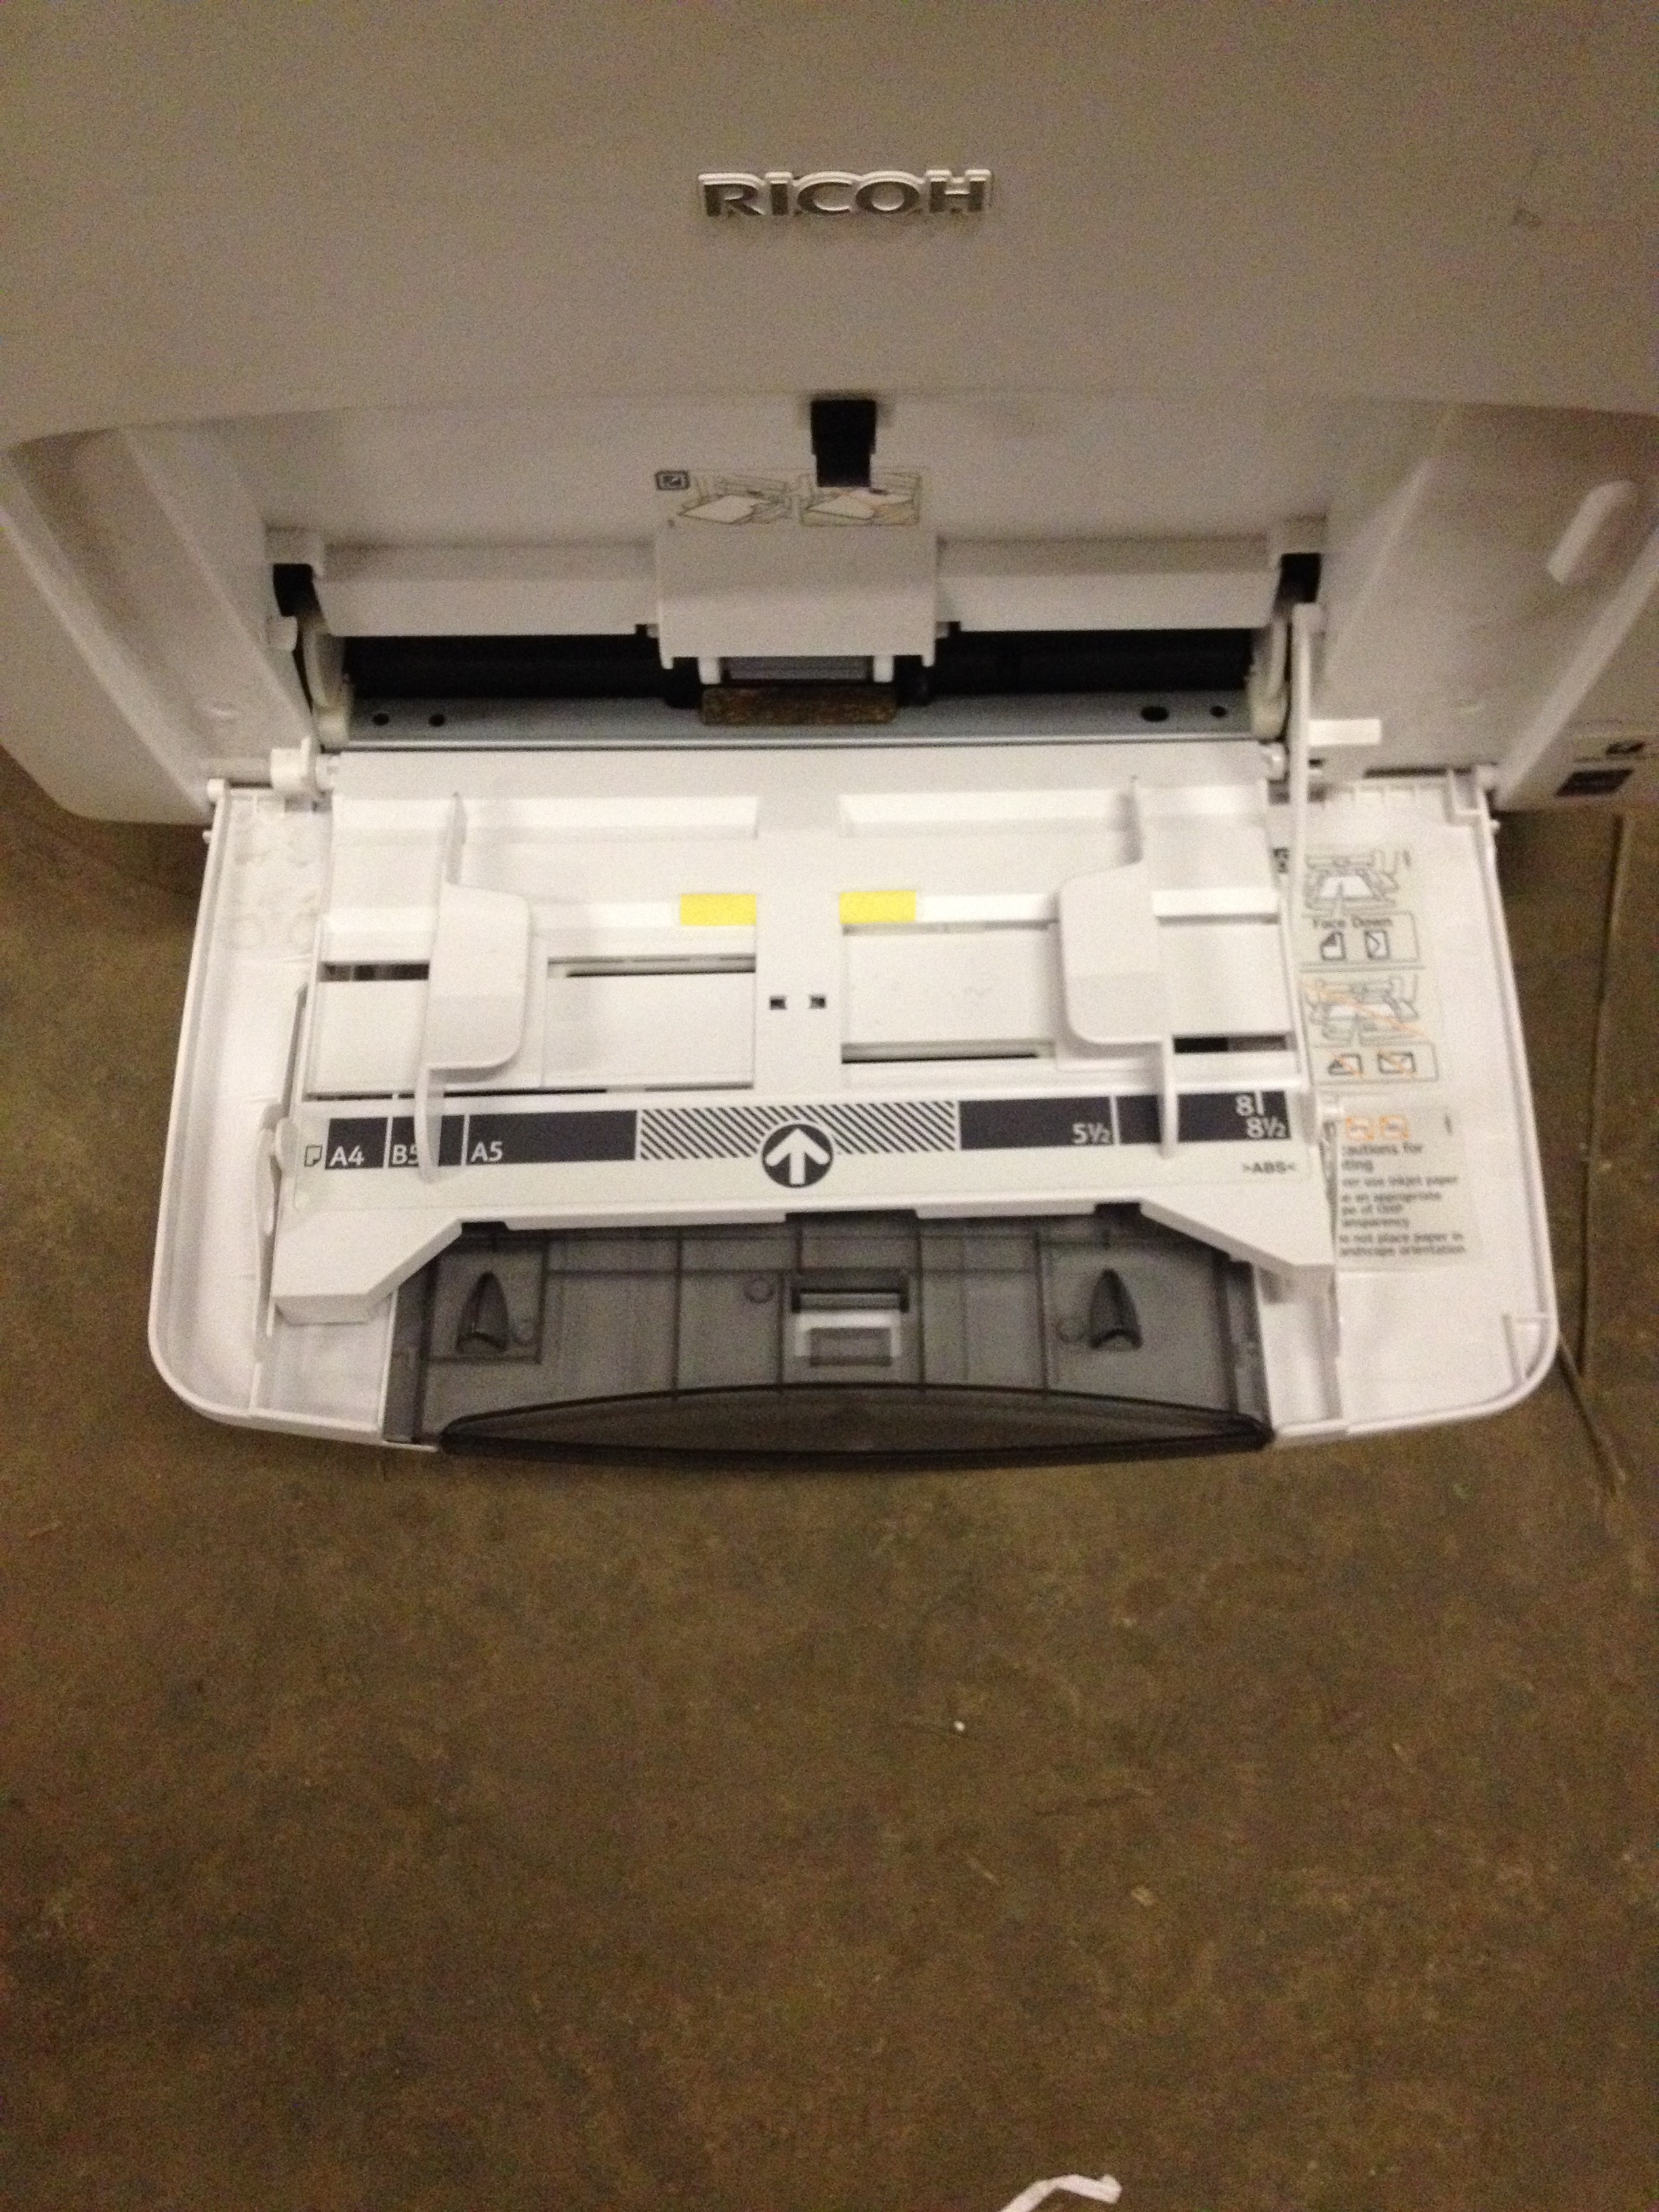 Ricoh Printer - Aficio SP C430DN (White) - Image 4 of 7